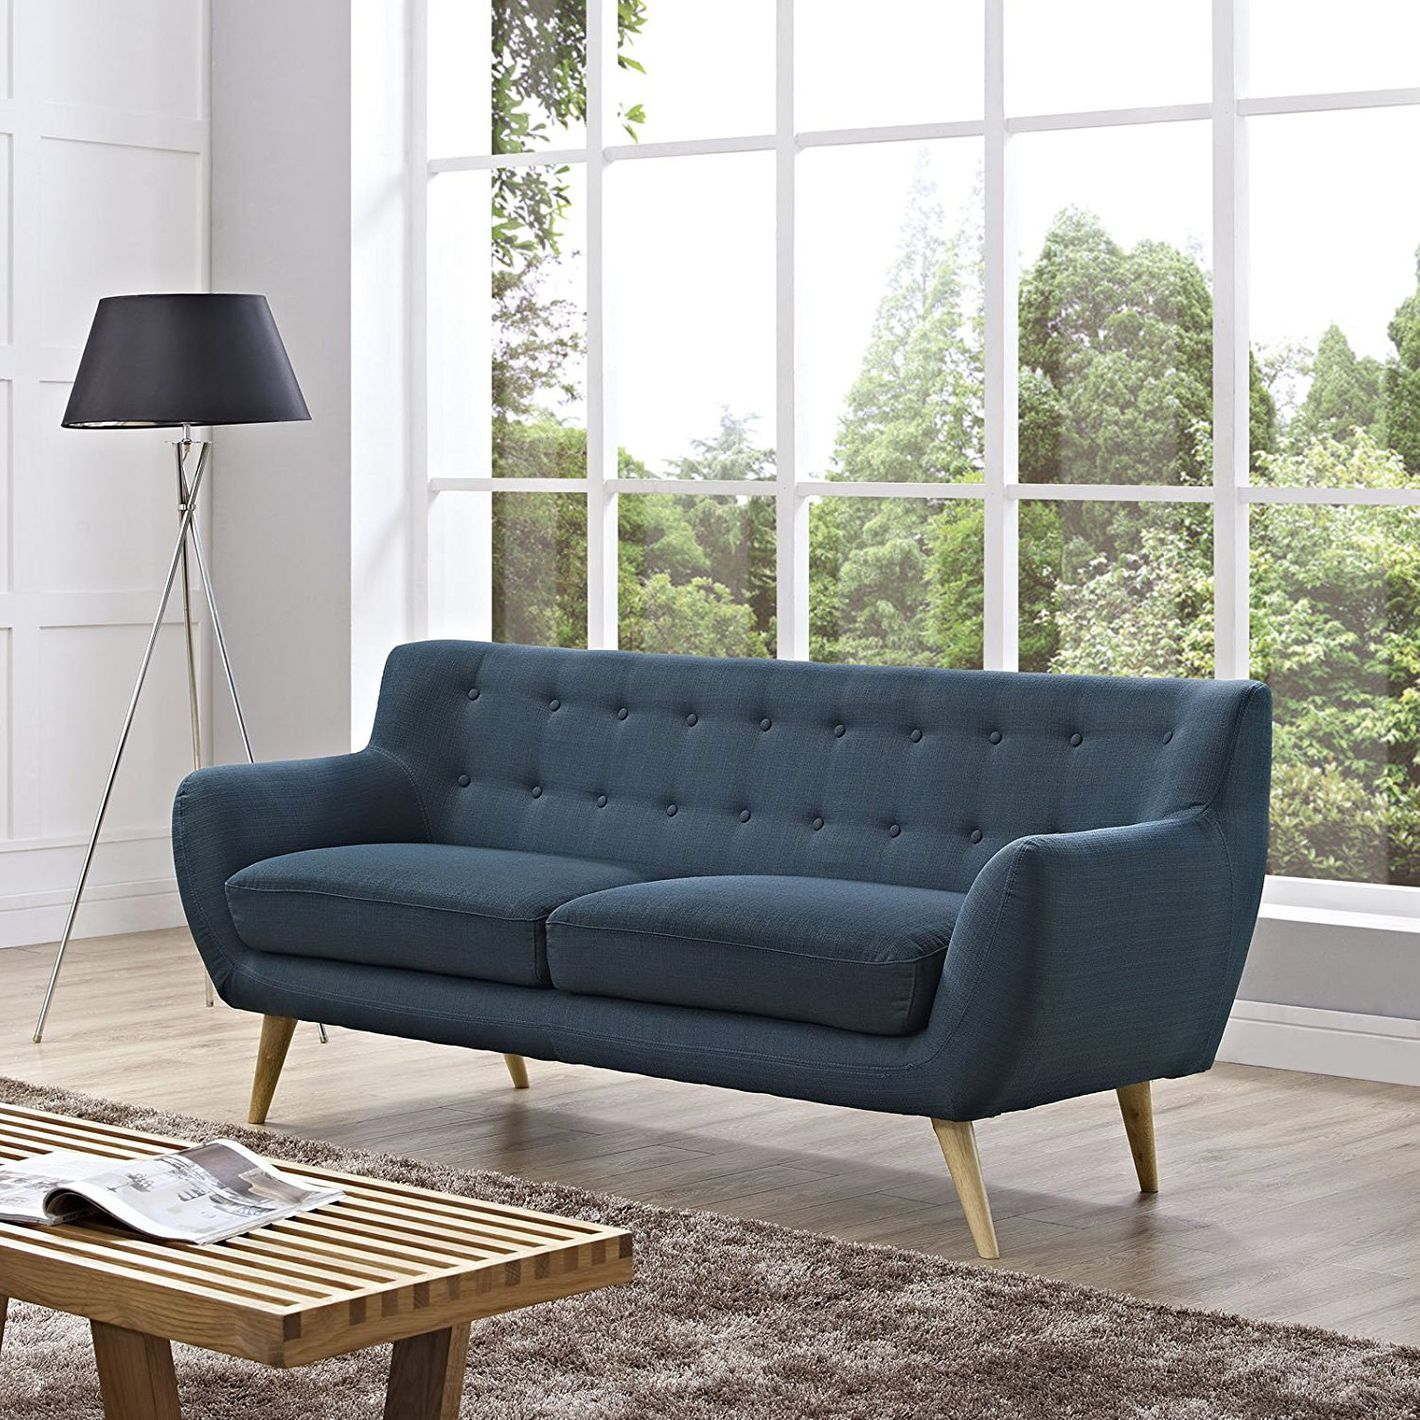 Best Affordable Sofa best affordable furniture moday rocker The Best Sofas Under 500